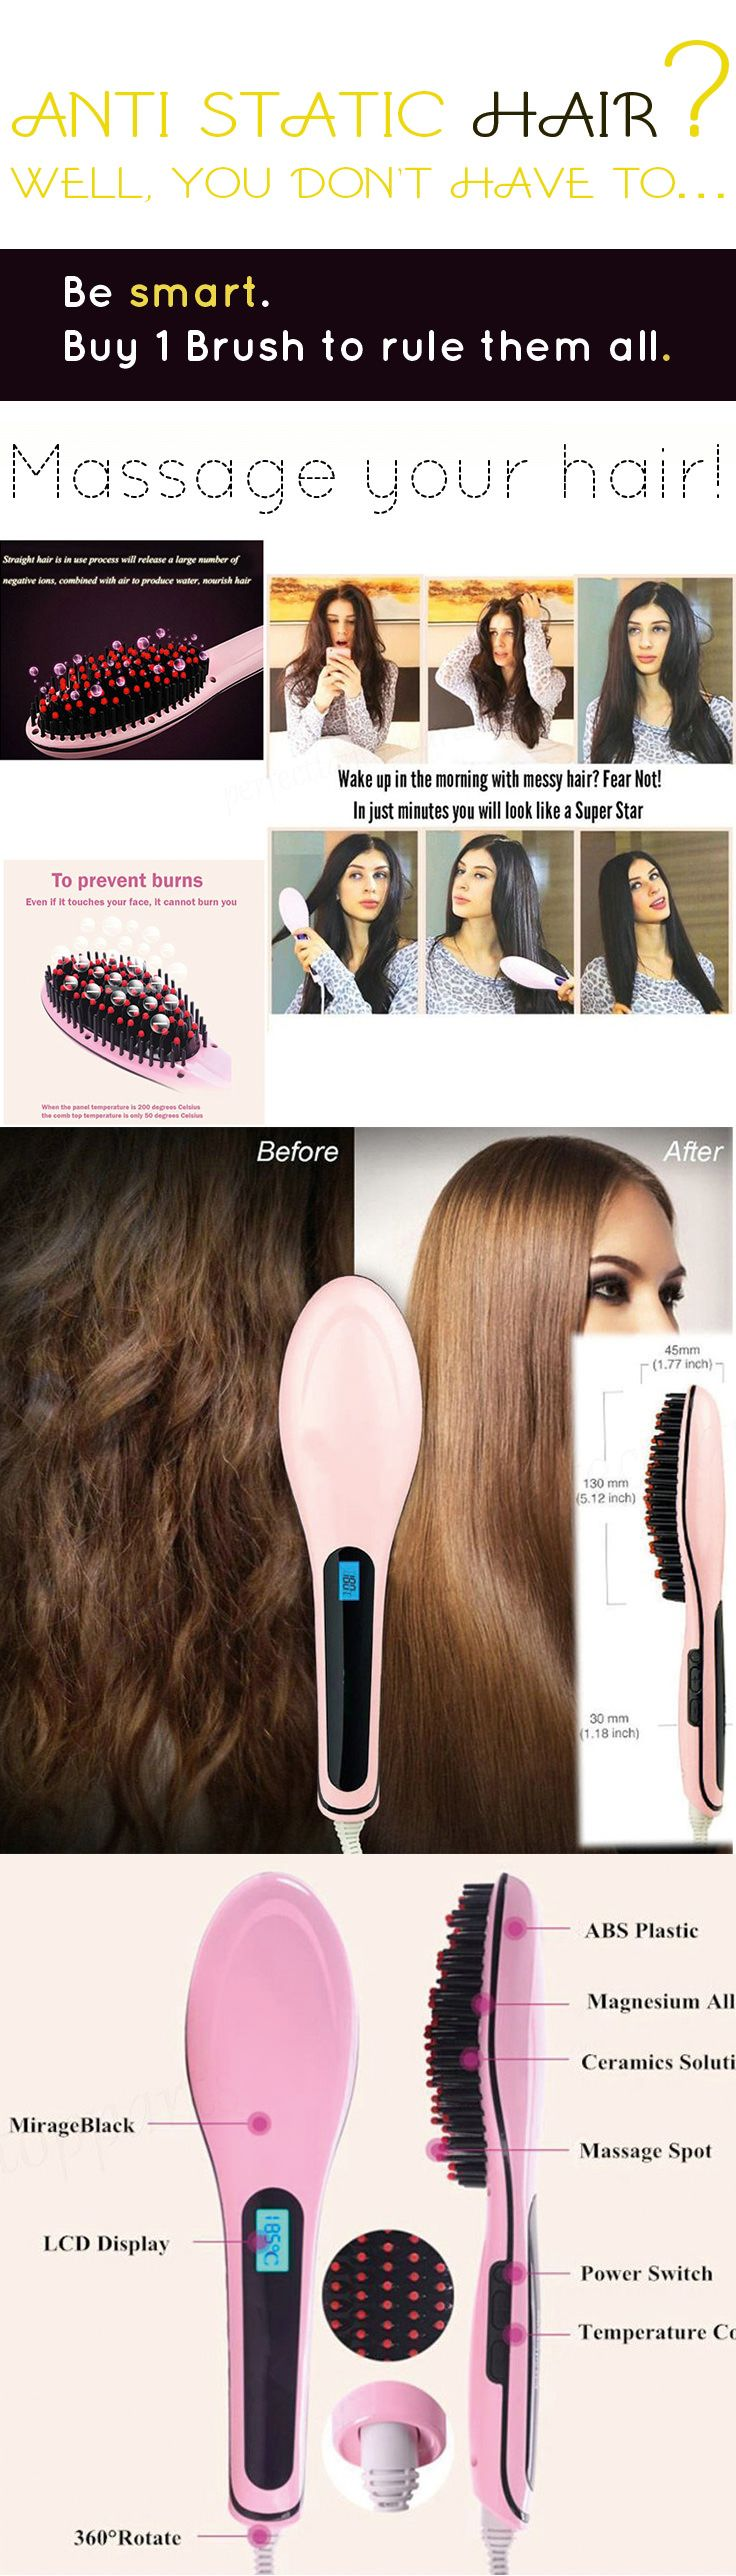 »If you thought an ionic hair brush is an old hat, check out this one. It got rave reviews and the anti static works like a charm.« #Electric #Hair #Massager #Straightener